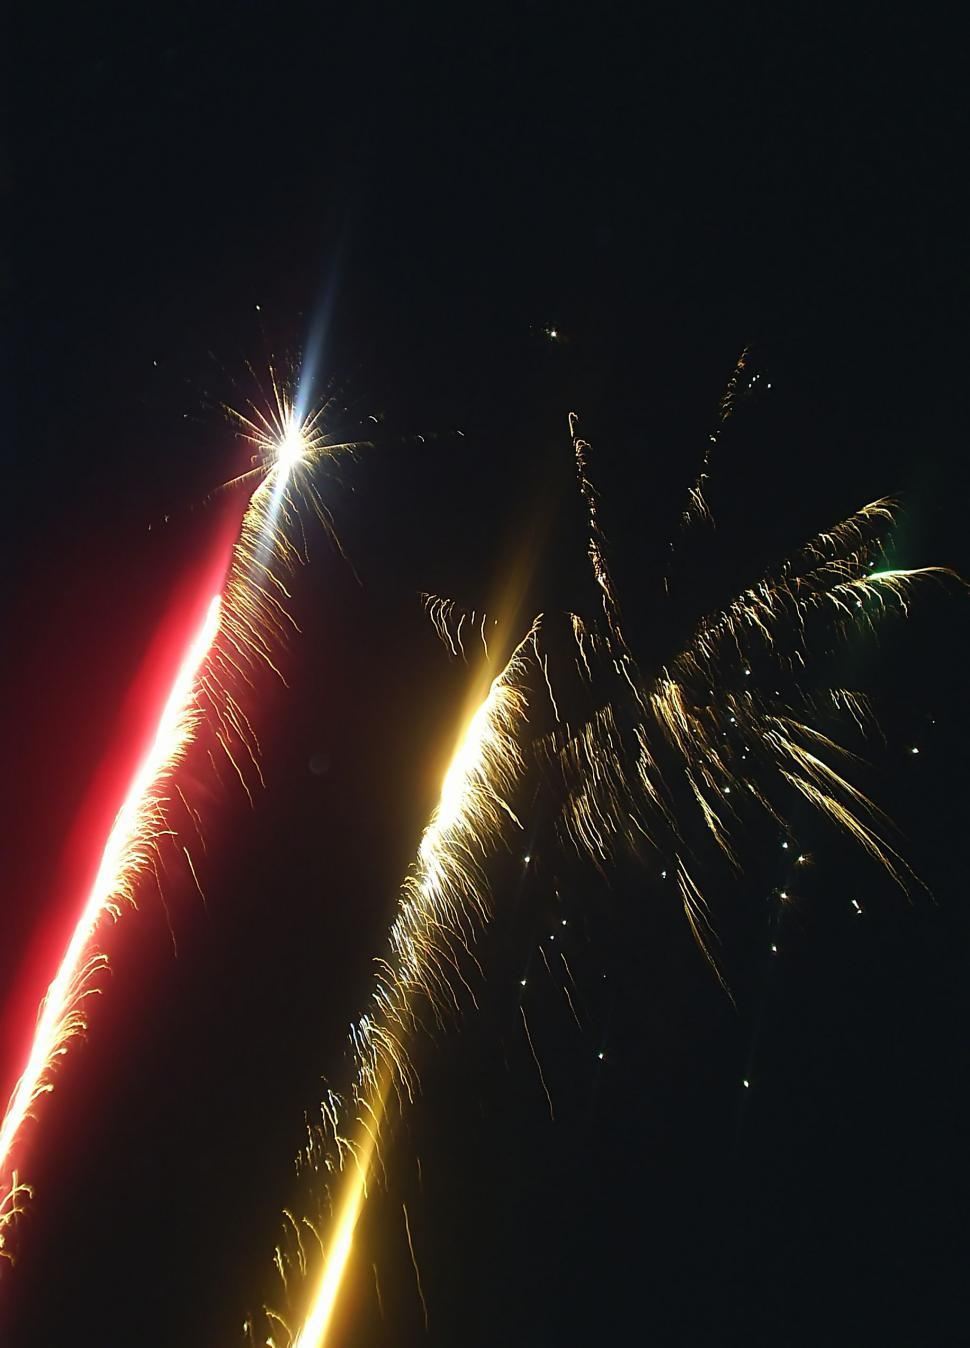 Download Free Stock Photo of Fireworks over the night sky